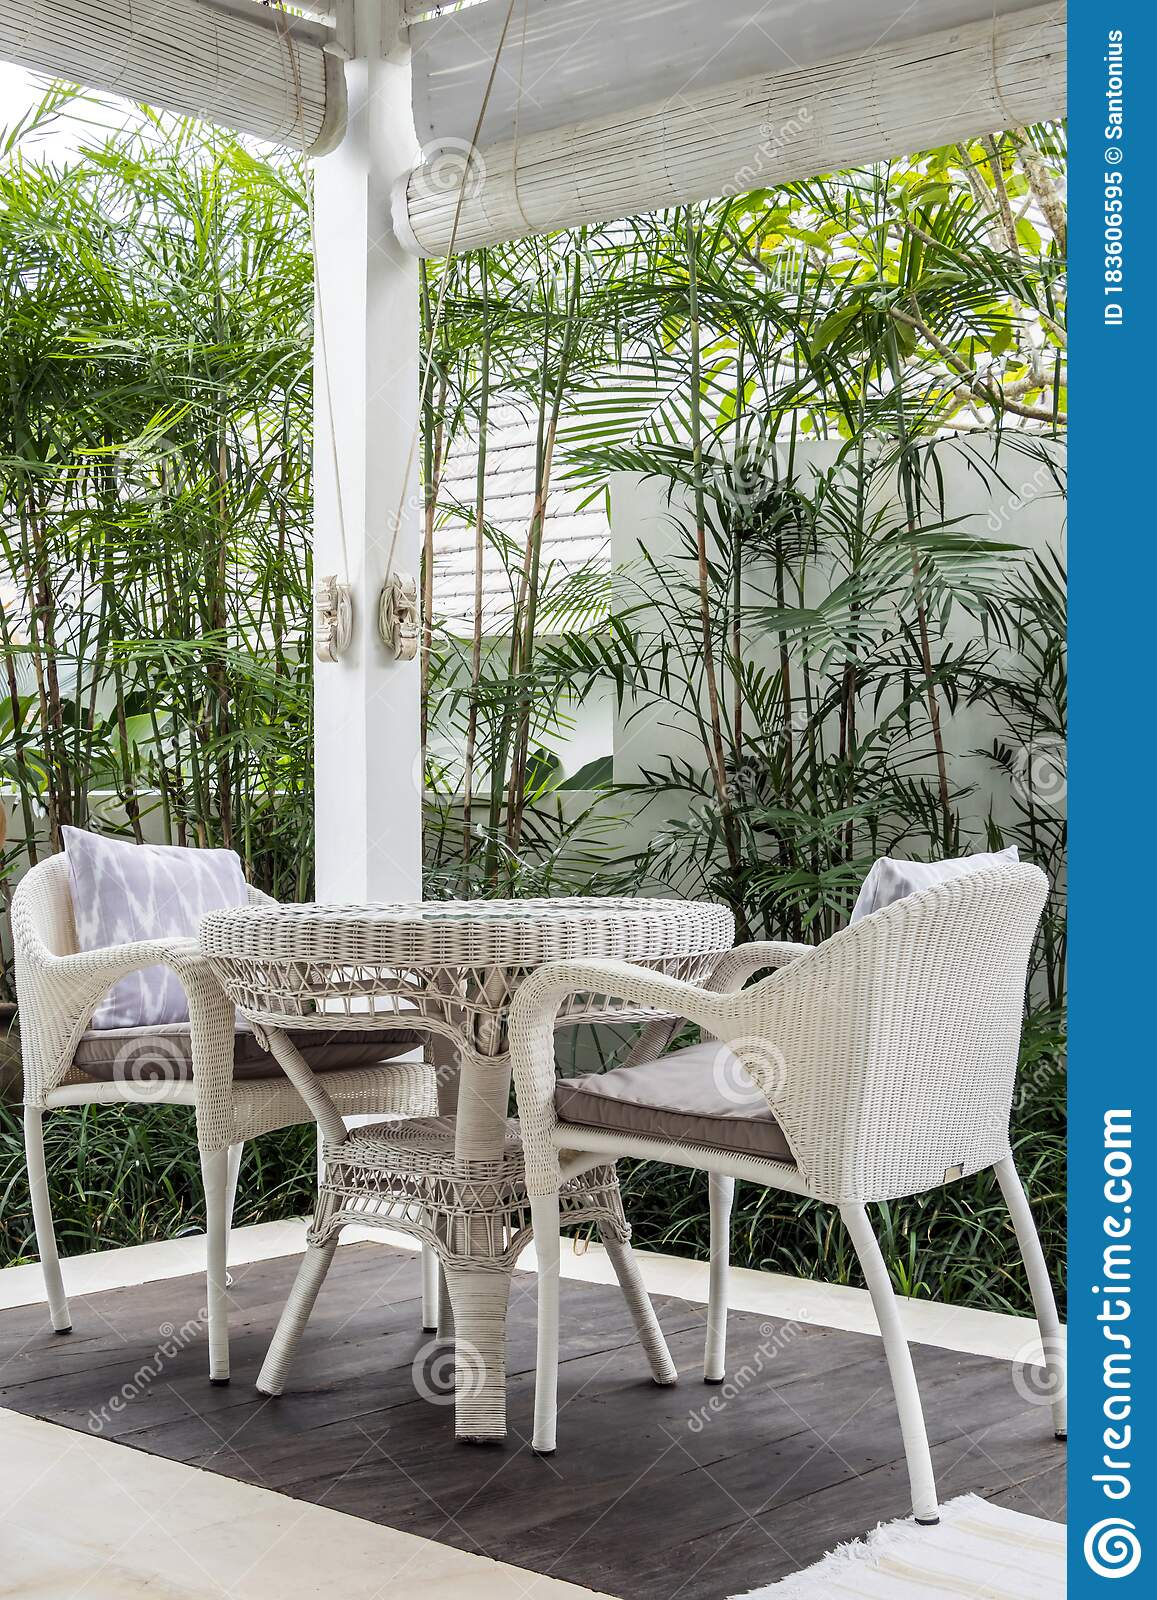 Unique Patio Area With Wooden Furniture Surrounded By A Garden Stock Image Image Of Flower Green 183606595